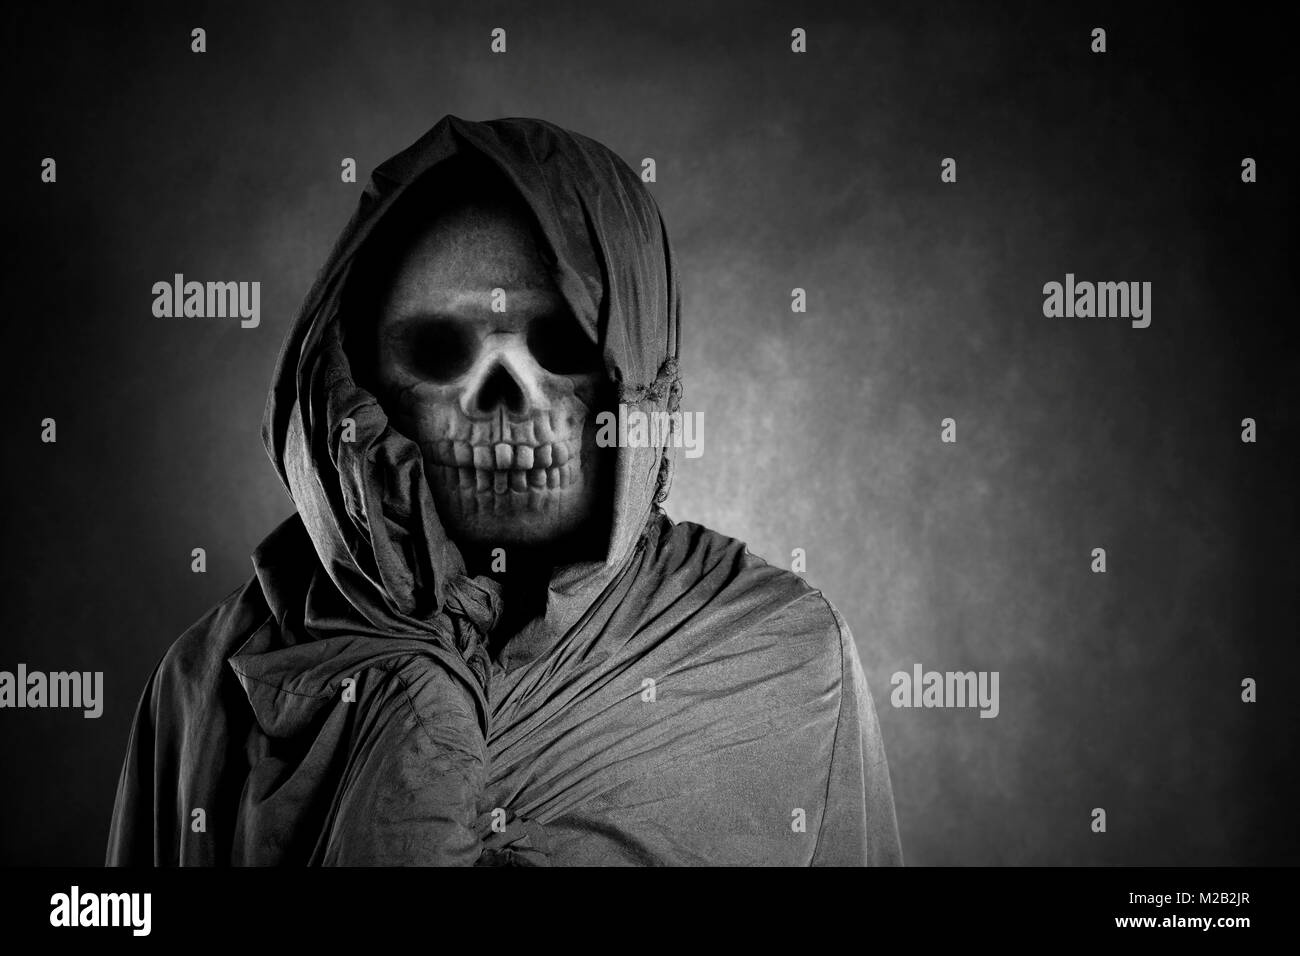 Grim reaper in the dark - Stock Image